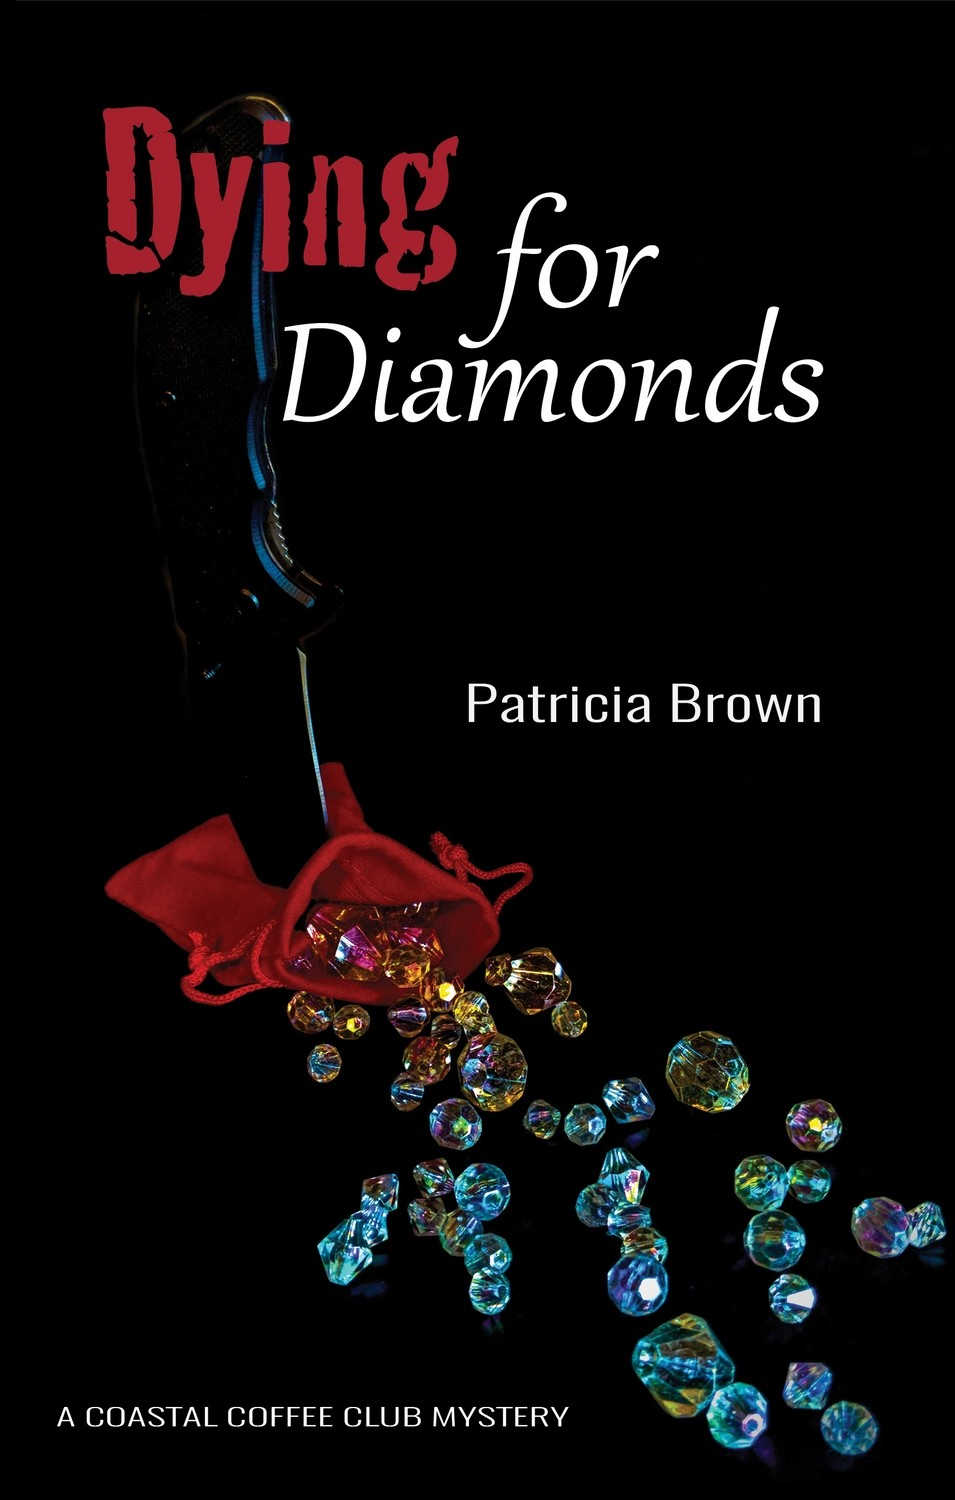 Dying for Diamonds -Author signed copy